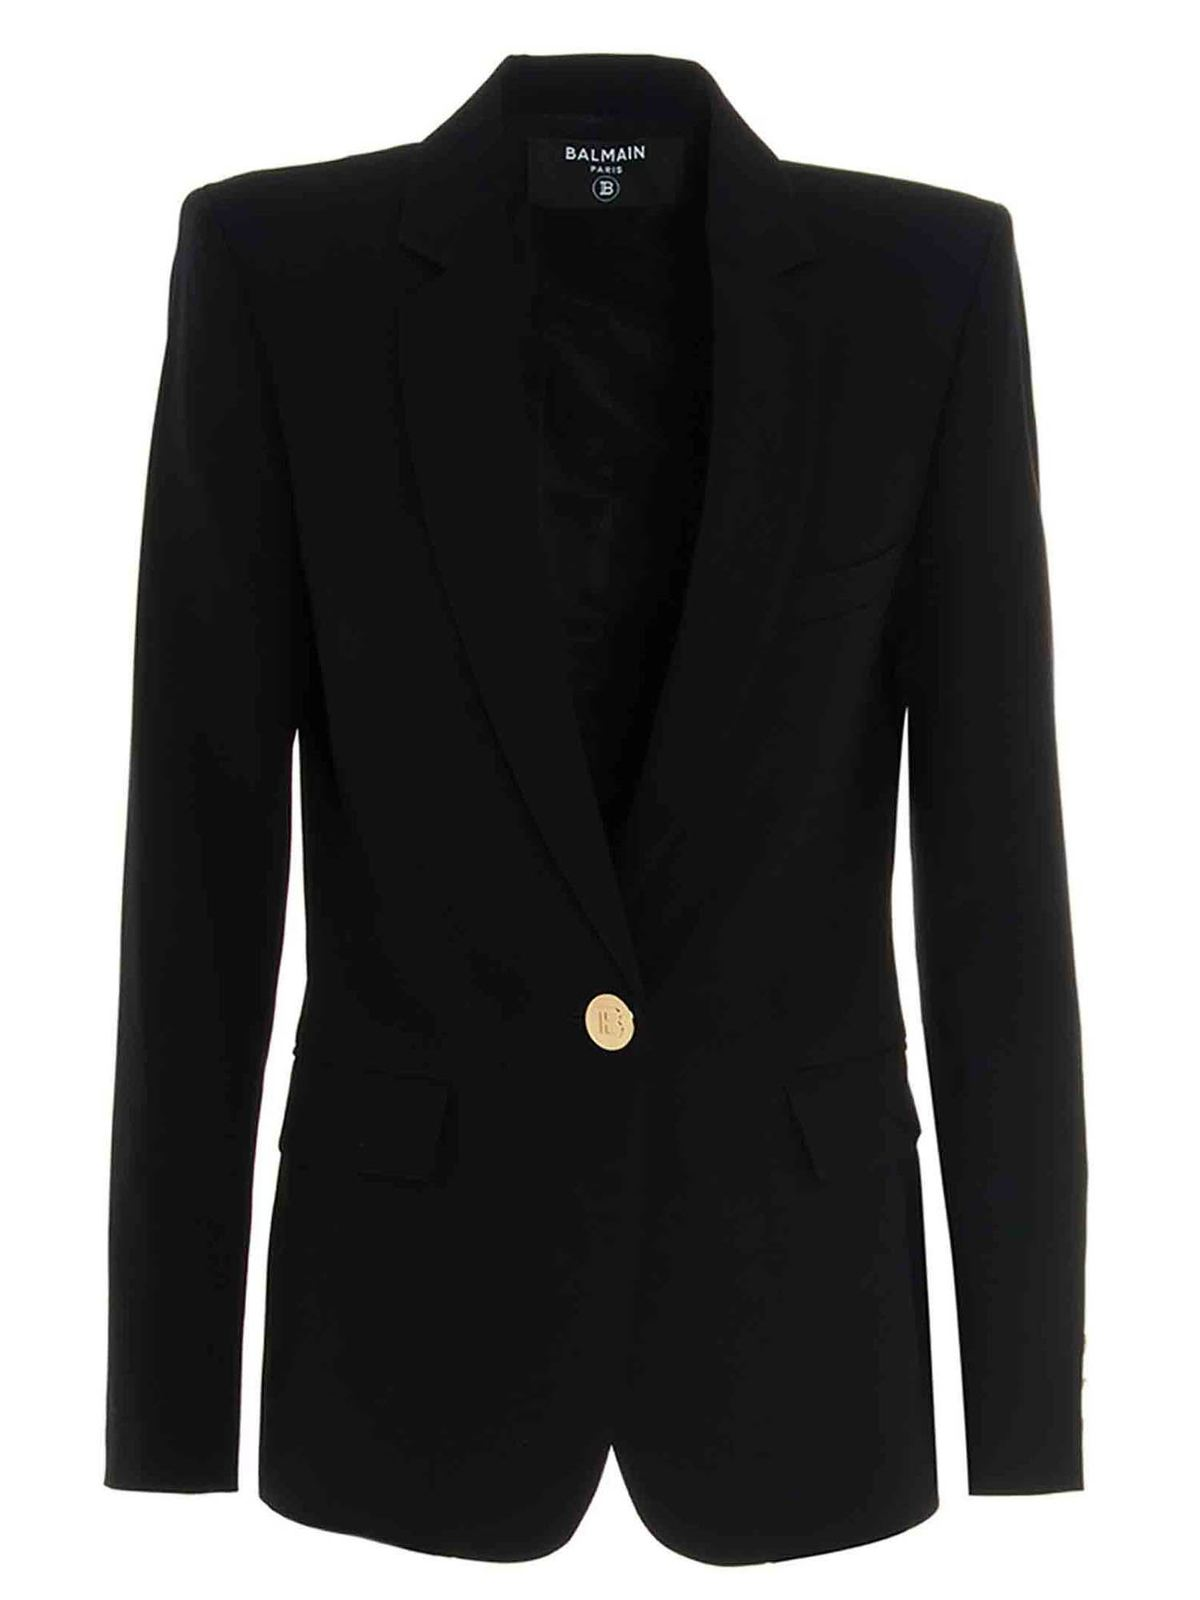 BALMAIN JACKET IN BLACK WITH CONTRASTING DETAIL